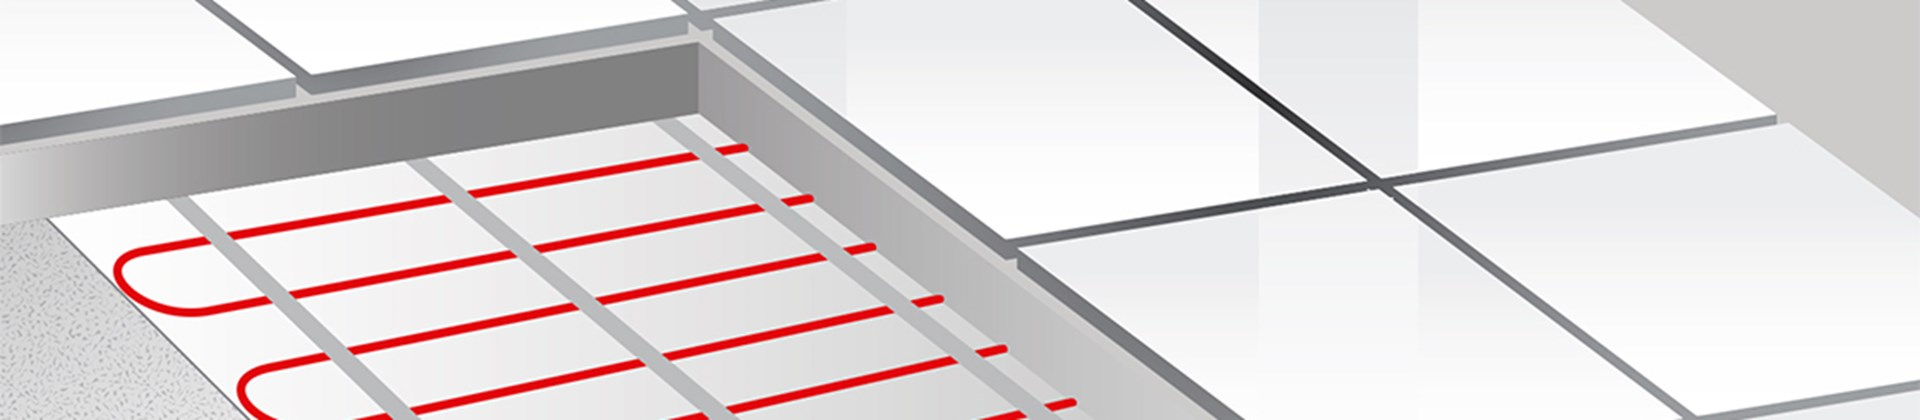 Danfoss Heat Cables : Heating cables for ice and snow melting danfoss